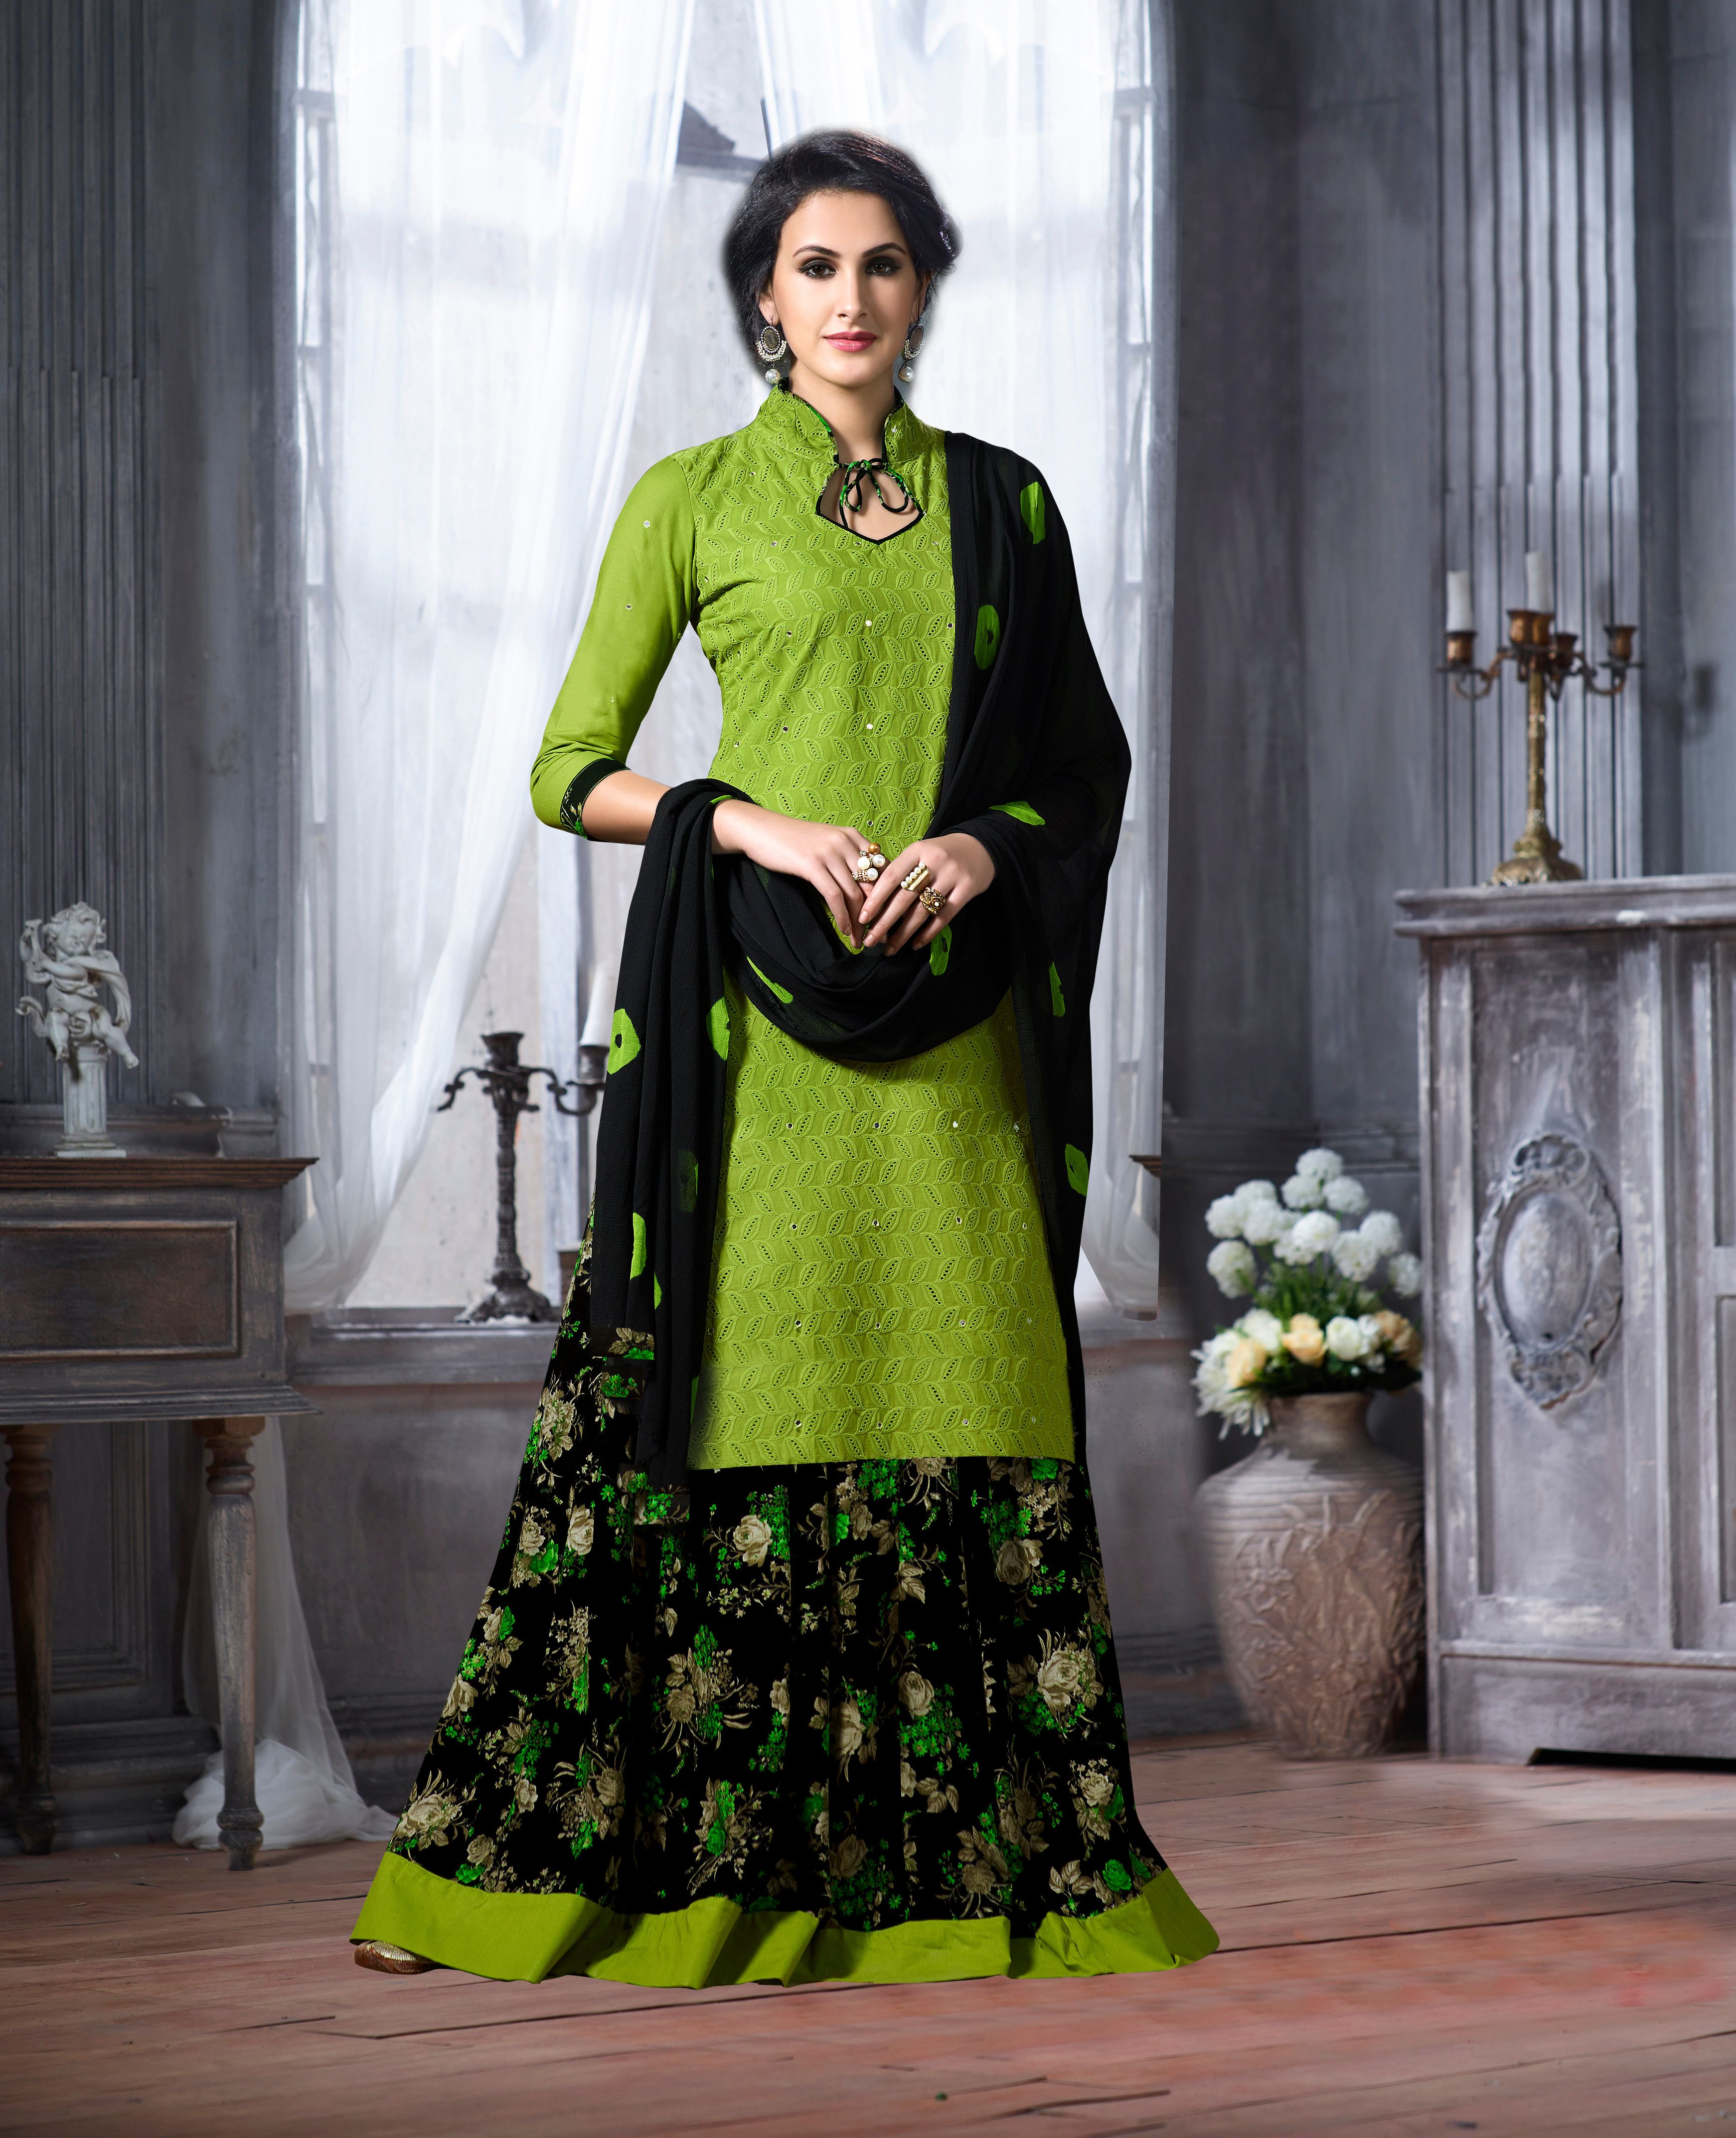 632ecaf1a4 Buy Craftsvilla Green Embroidered Chicken Cotton With Mirror Work Party  Wear Solid Dress Material With Stitched Skirt & Matching Dupatta online.